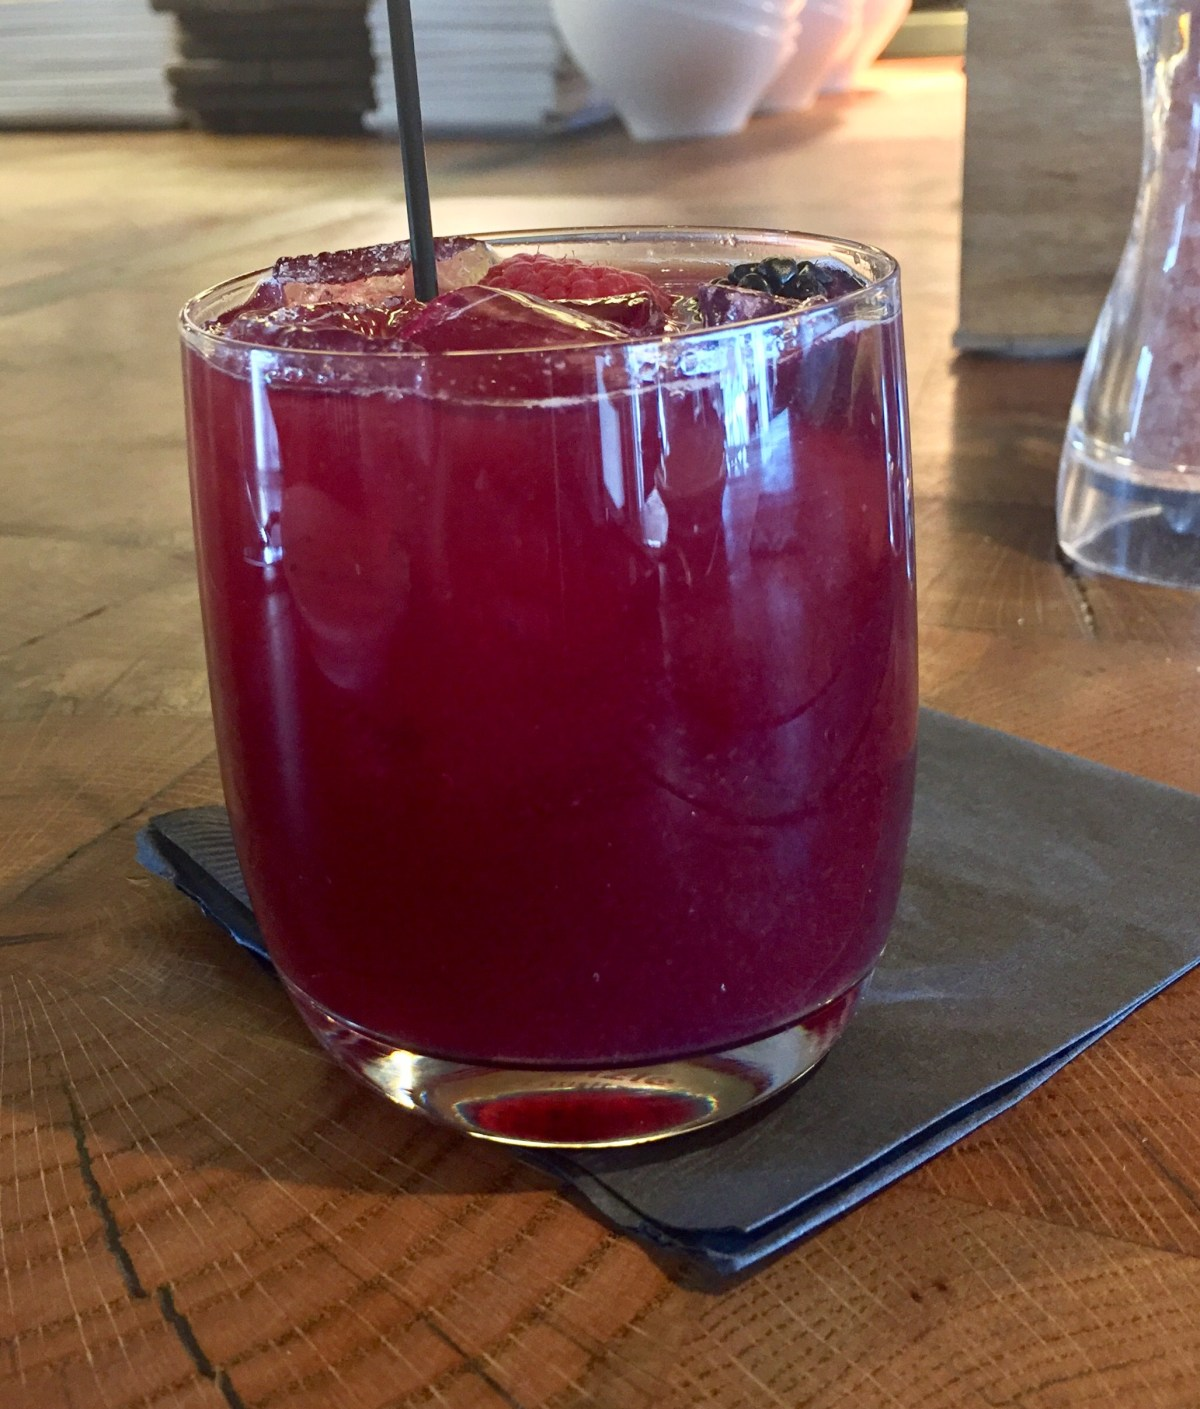 Glass of Sangria at Carson Kitchen #carsonkitchen #kerrysimonrestaurant #downtownlasvegas #downtownvegas #vegasbarcrawl